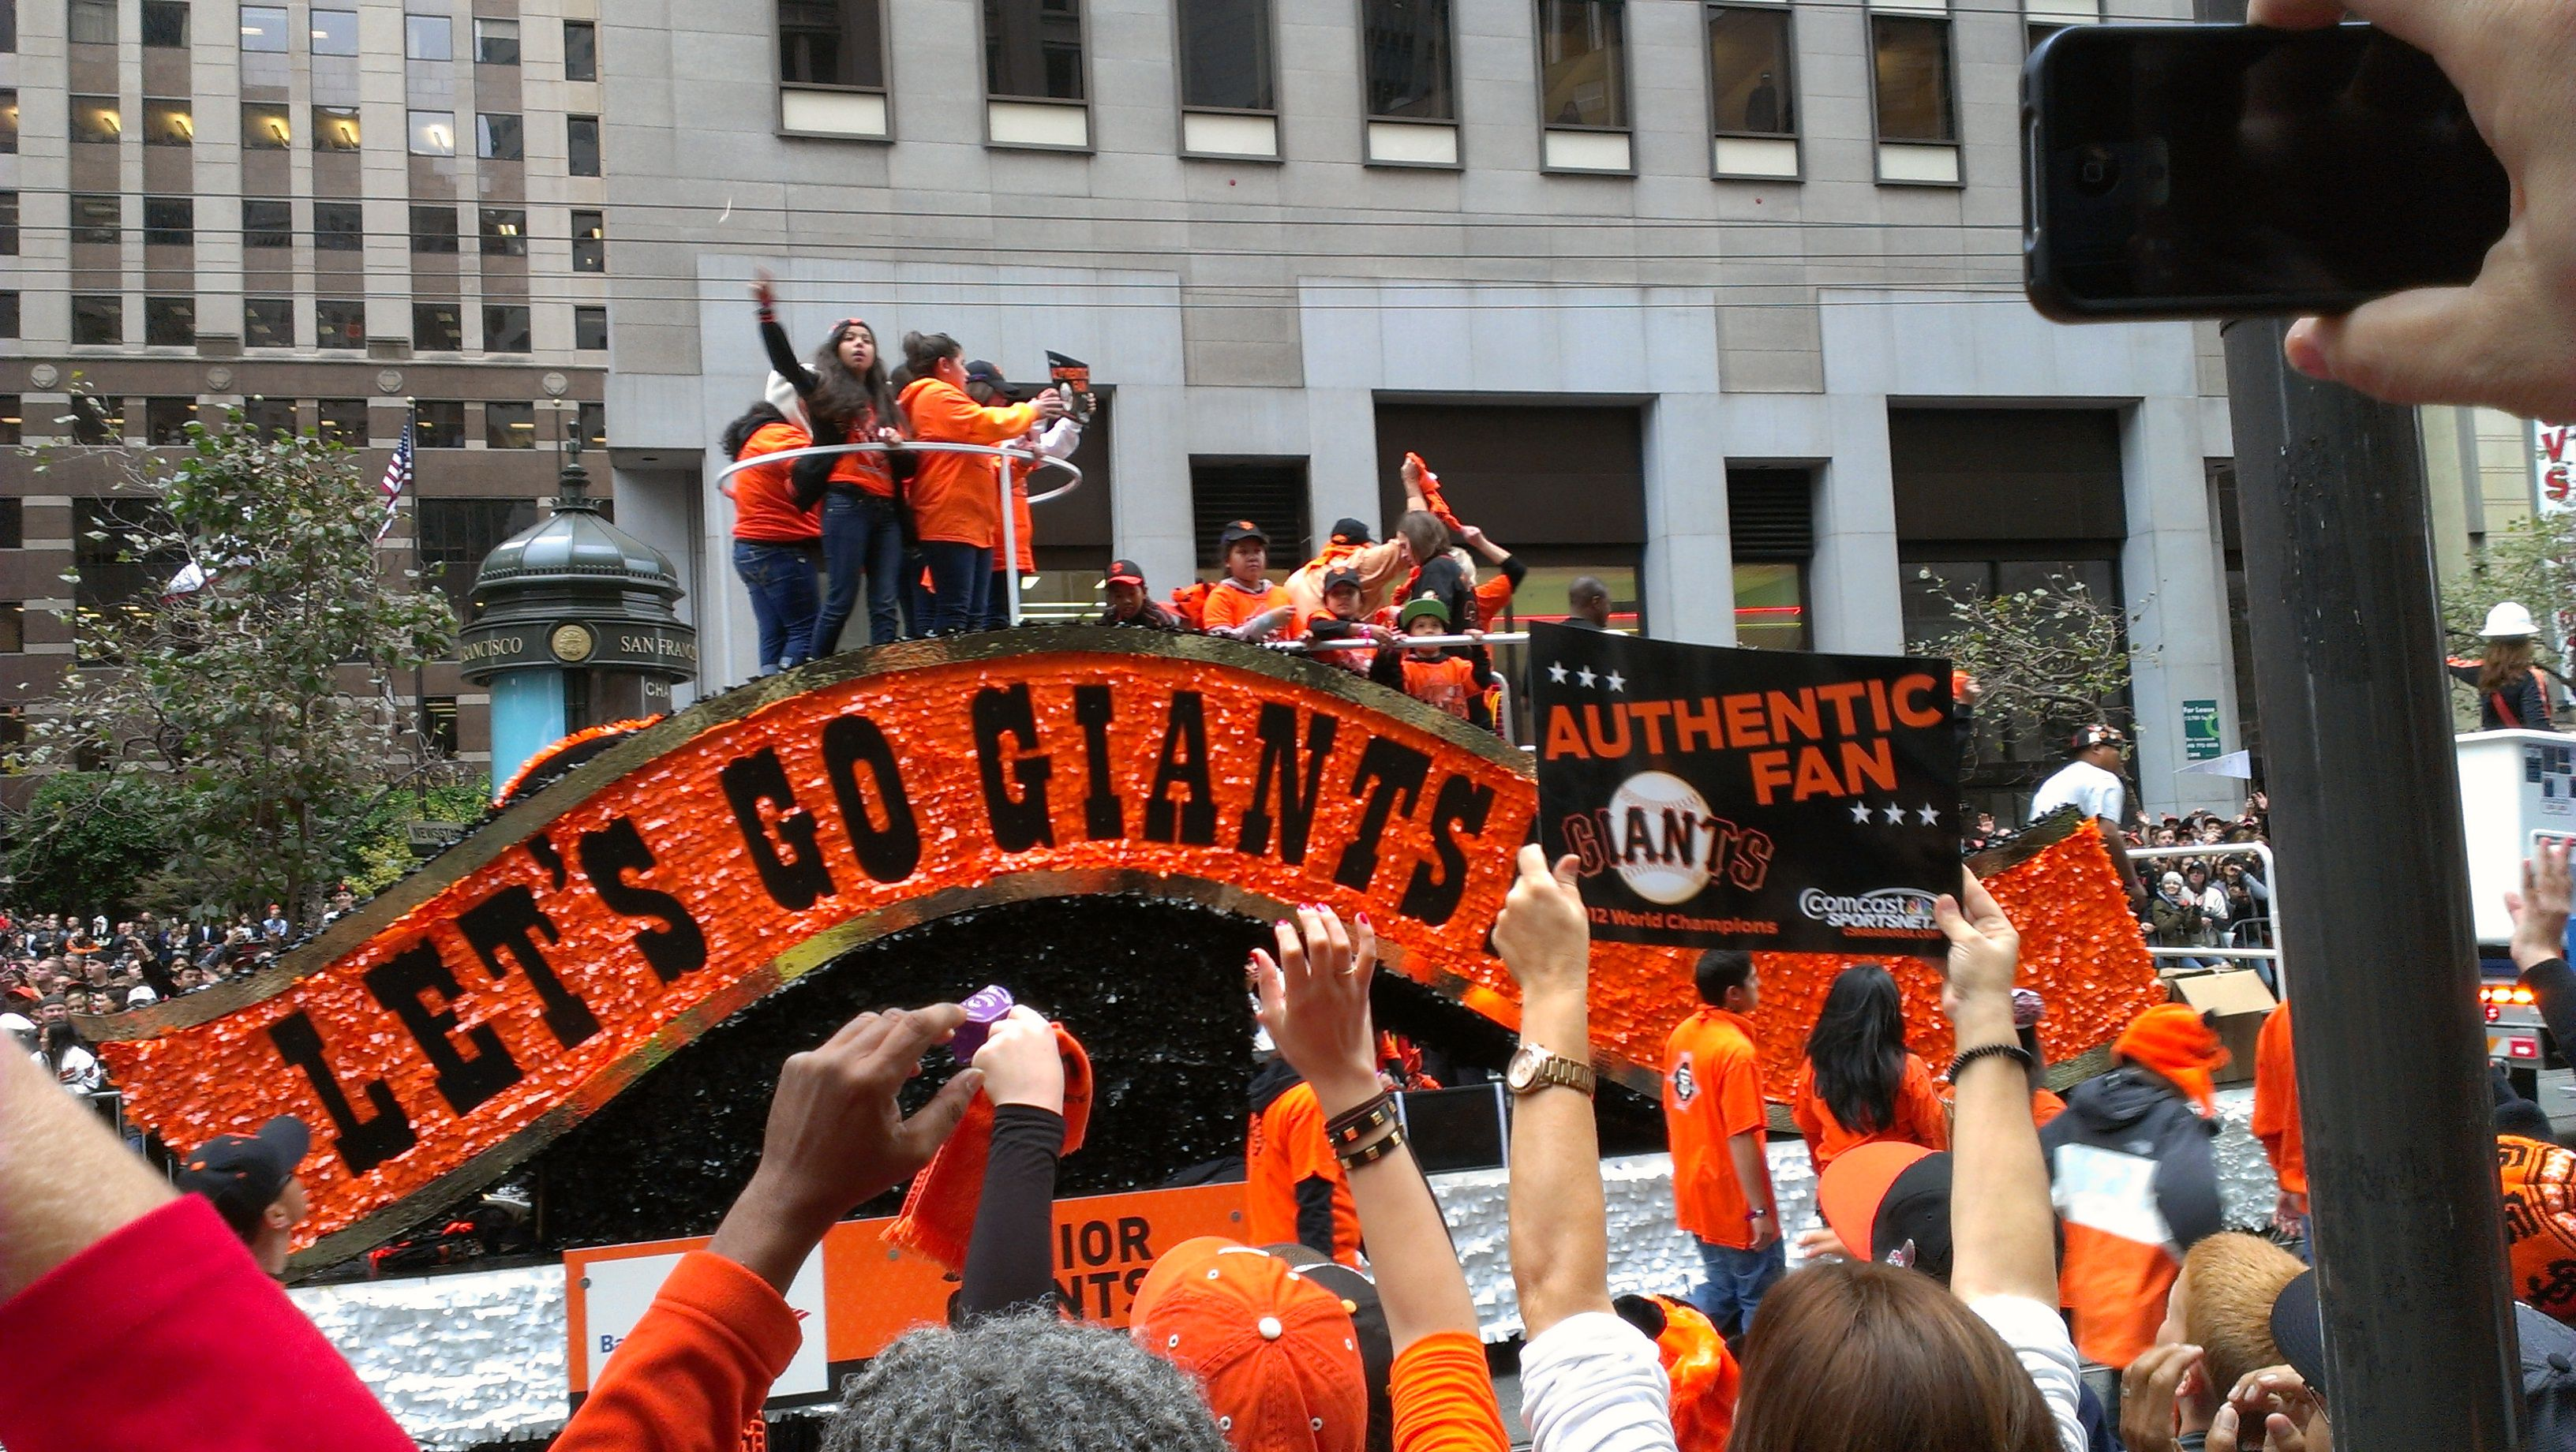 The most diverse city is celebrating a 2nd #WorldSeries win in 3 yrs! GO #SFGiants!